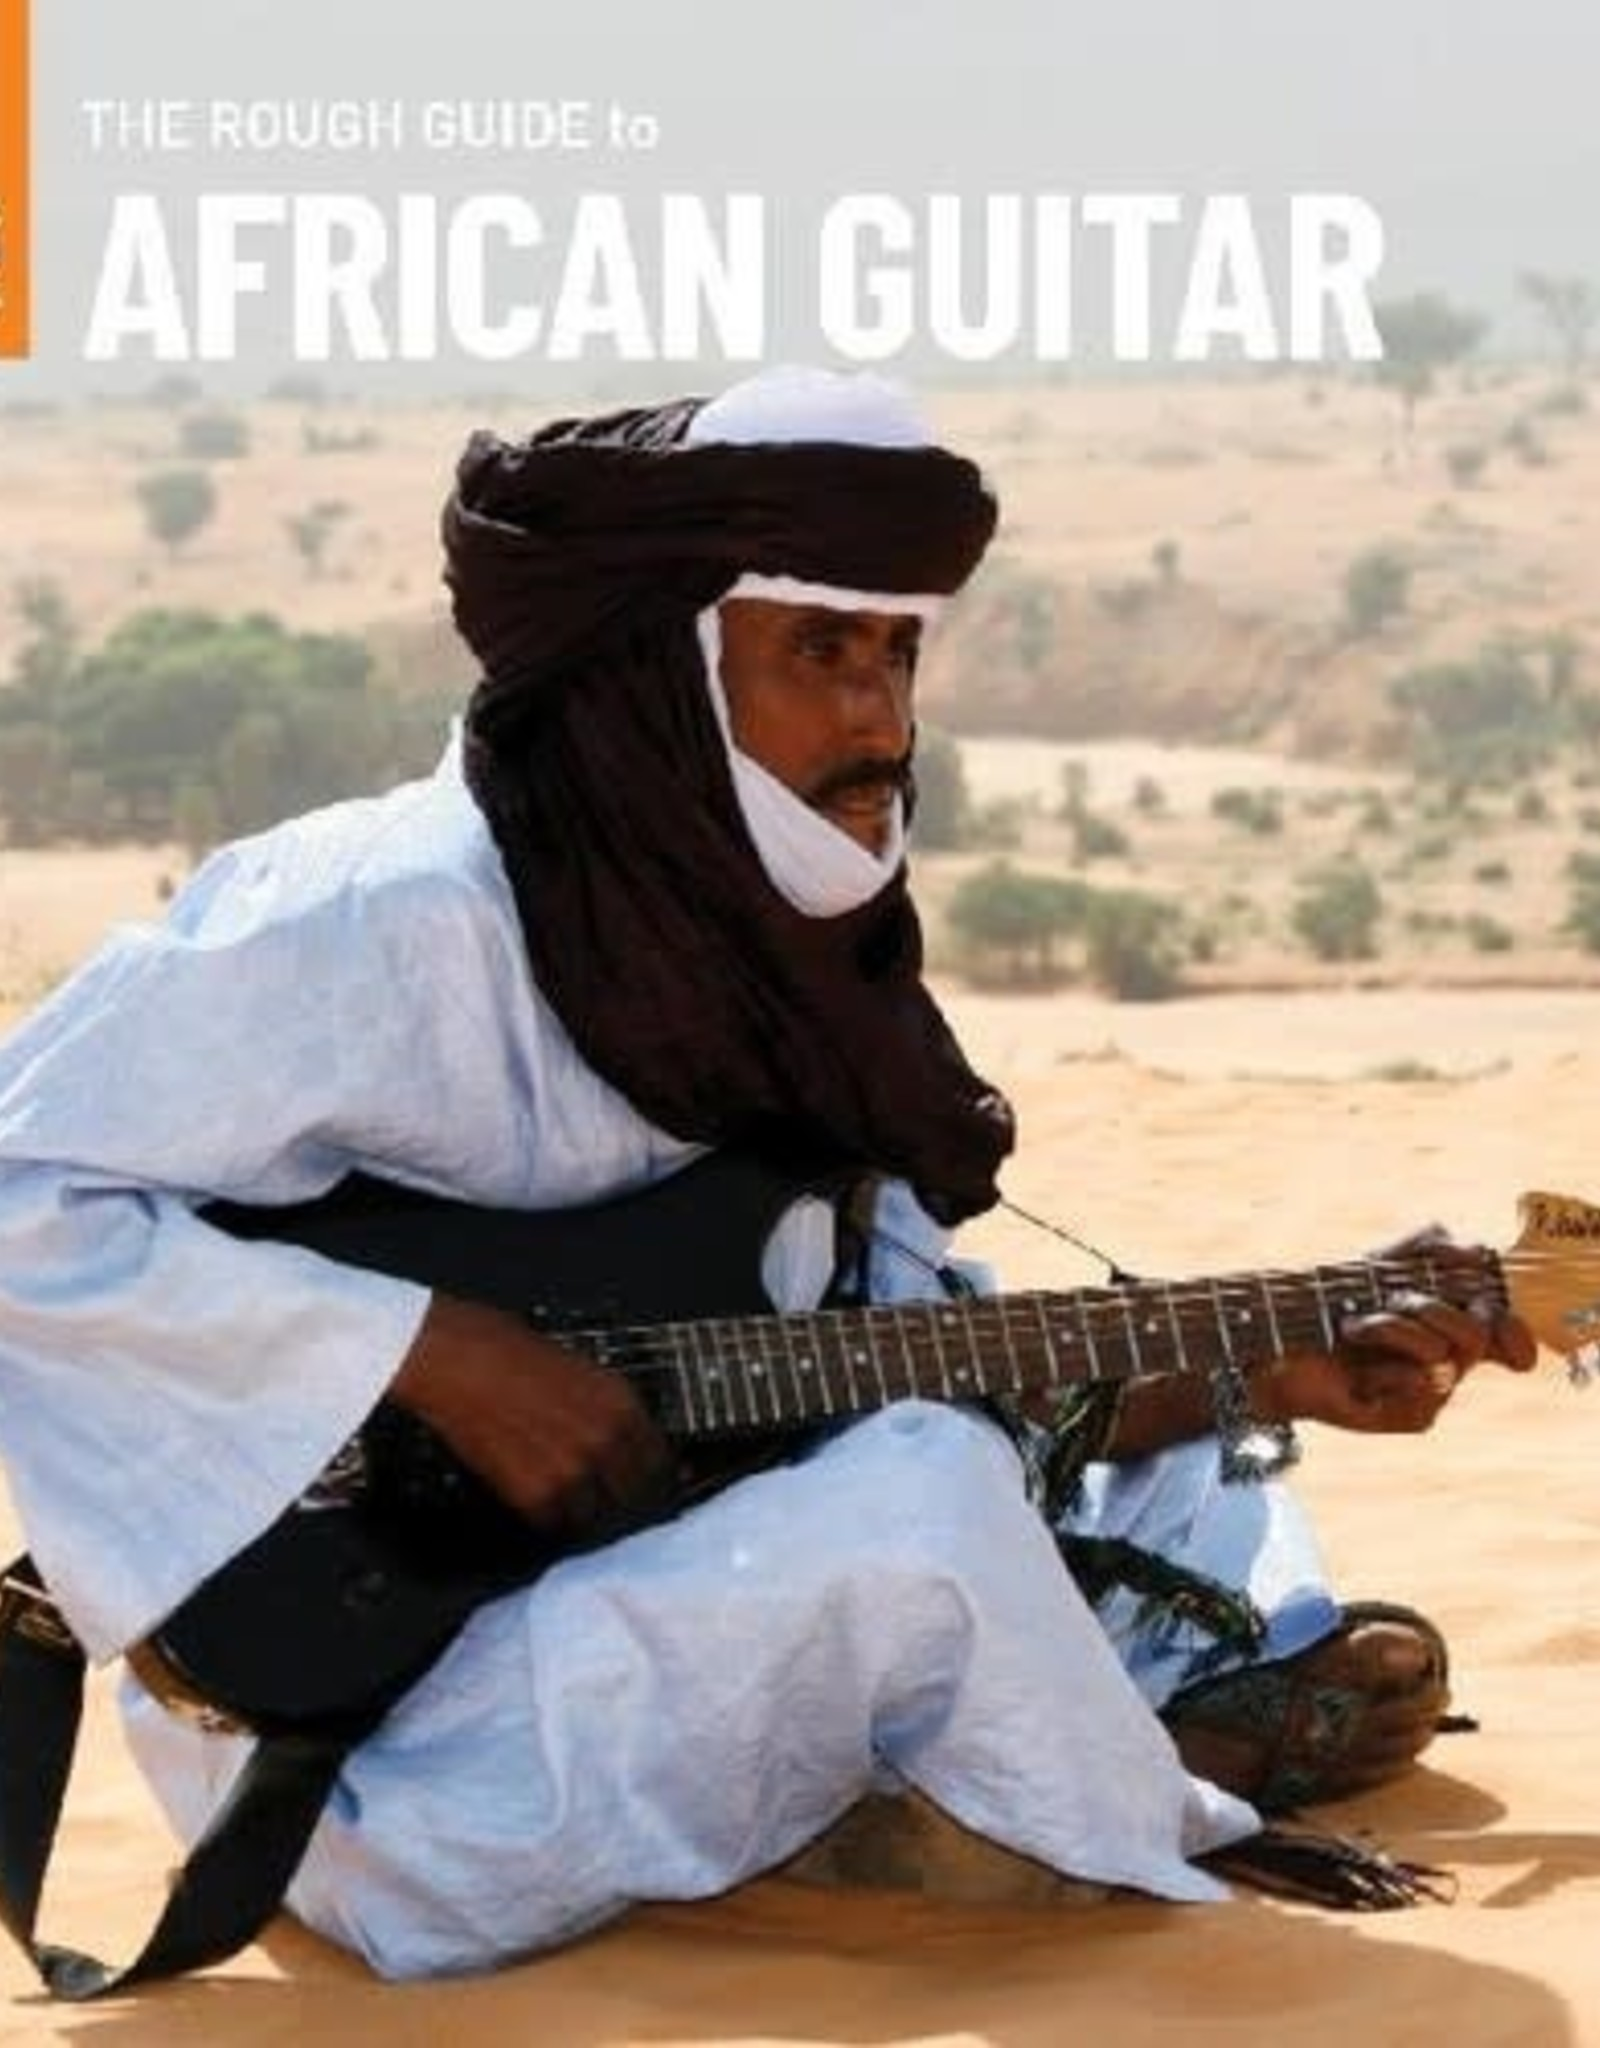 Rough Guide to African Guitar